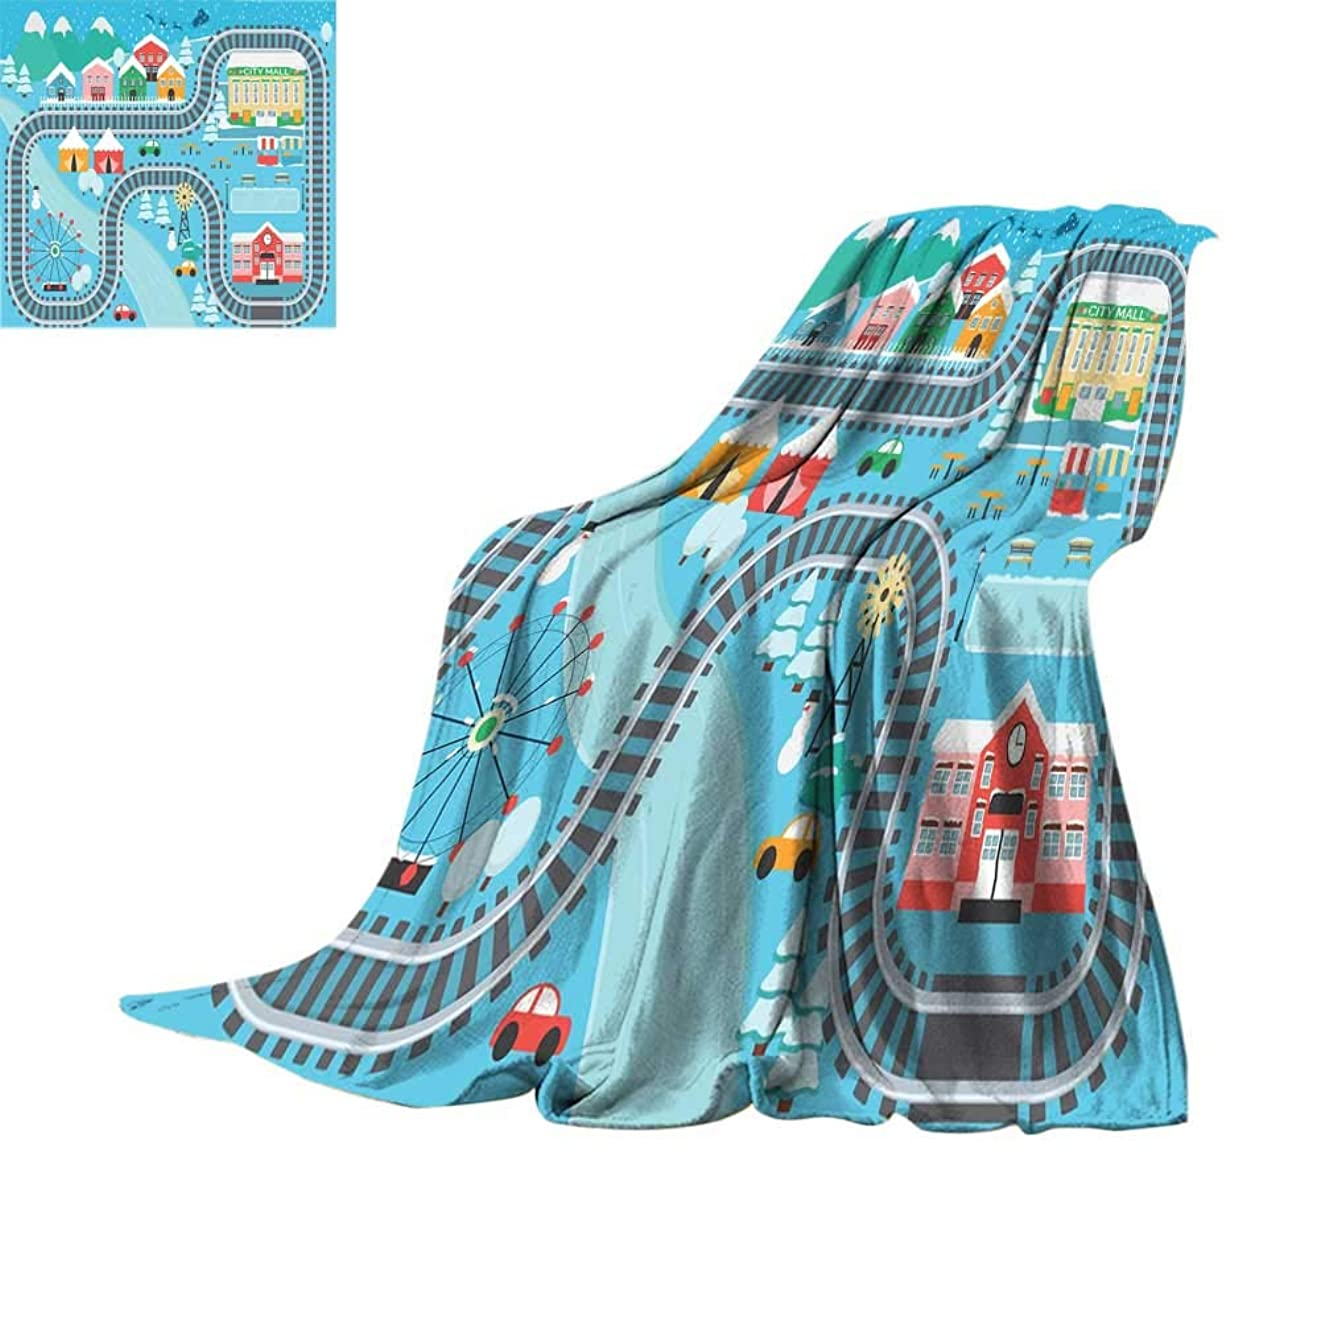 Joedecor Kids Activity Outdoor Microfiber Blanket, Lovely City in The Winter Train Track Activity in Cartoon Drawing Style All Season Fluffy Blankets for Camping Bed Sofa, 70